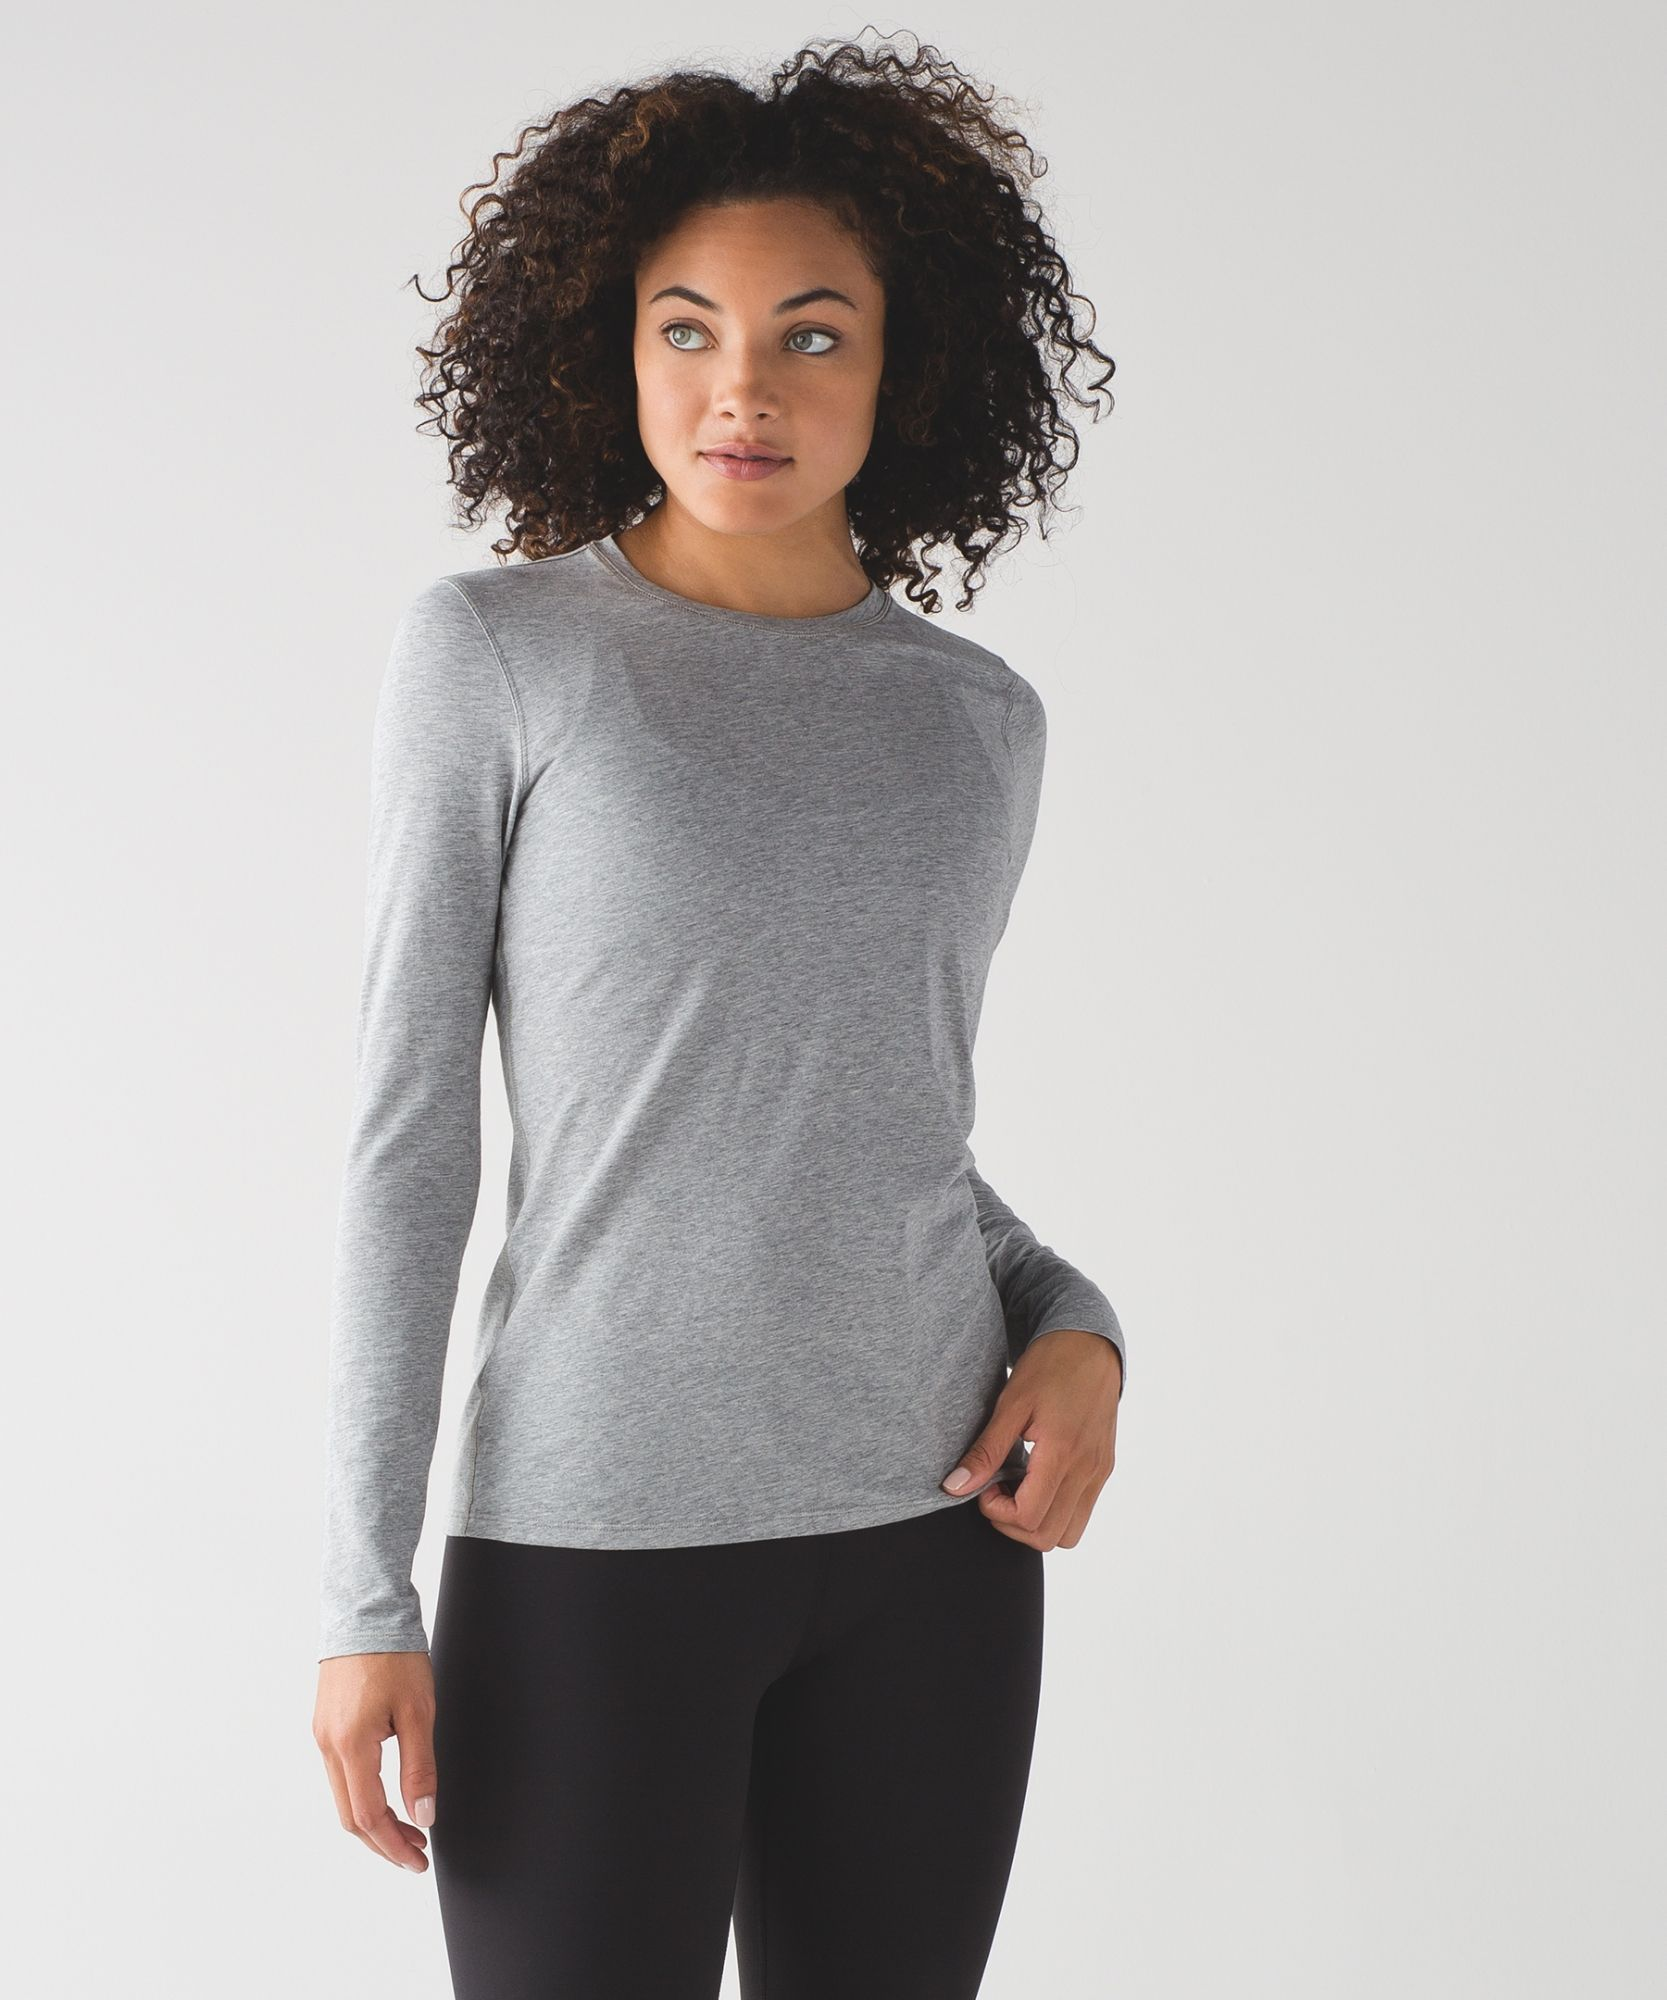 Kitsilano Long Sleeve | Women's Long Sleeves 5